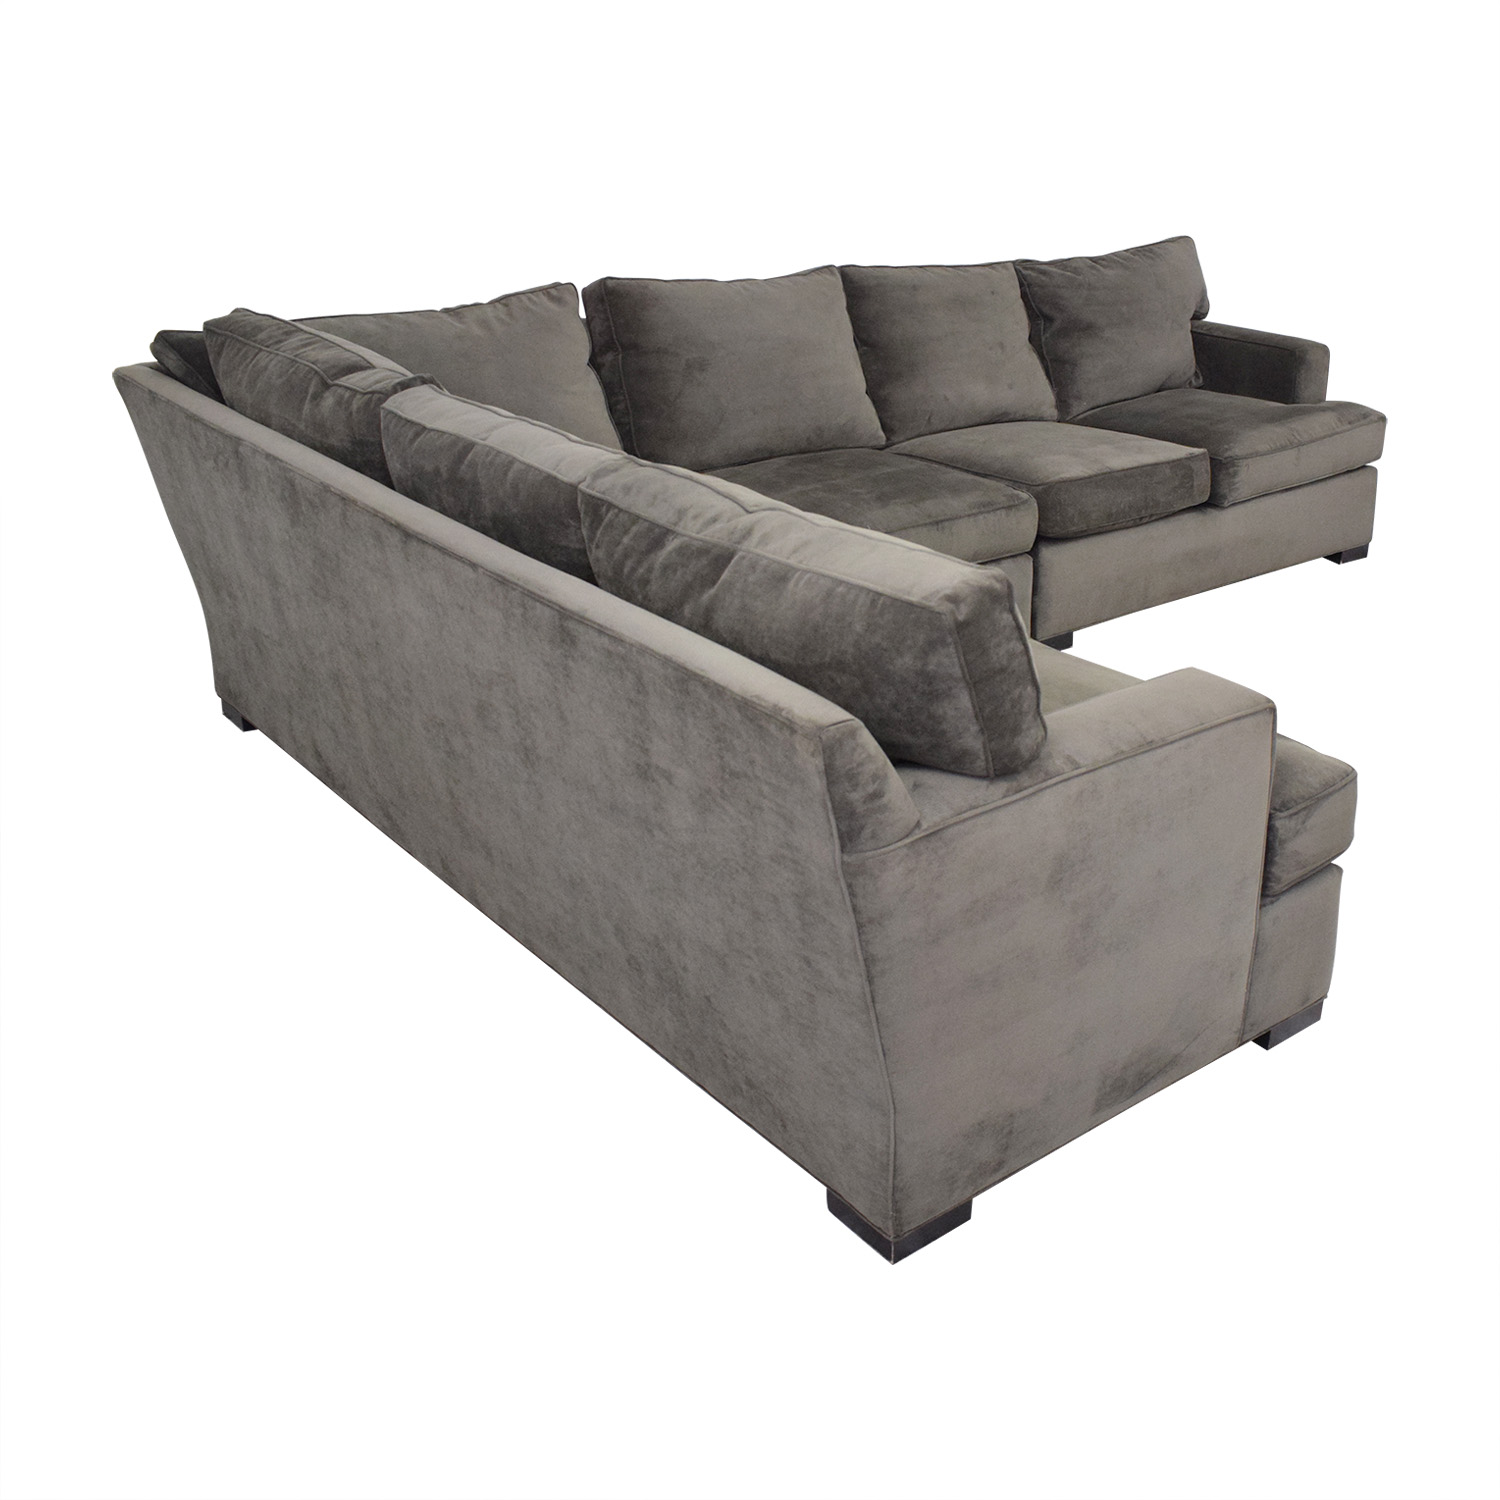 Arhaus Arhaus Dune Sectional Sofa discount